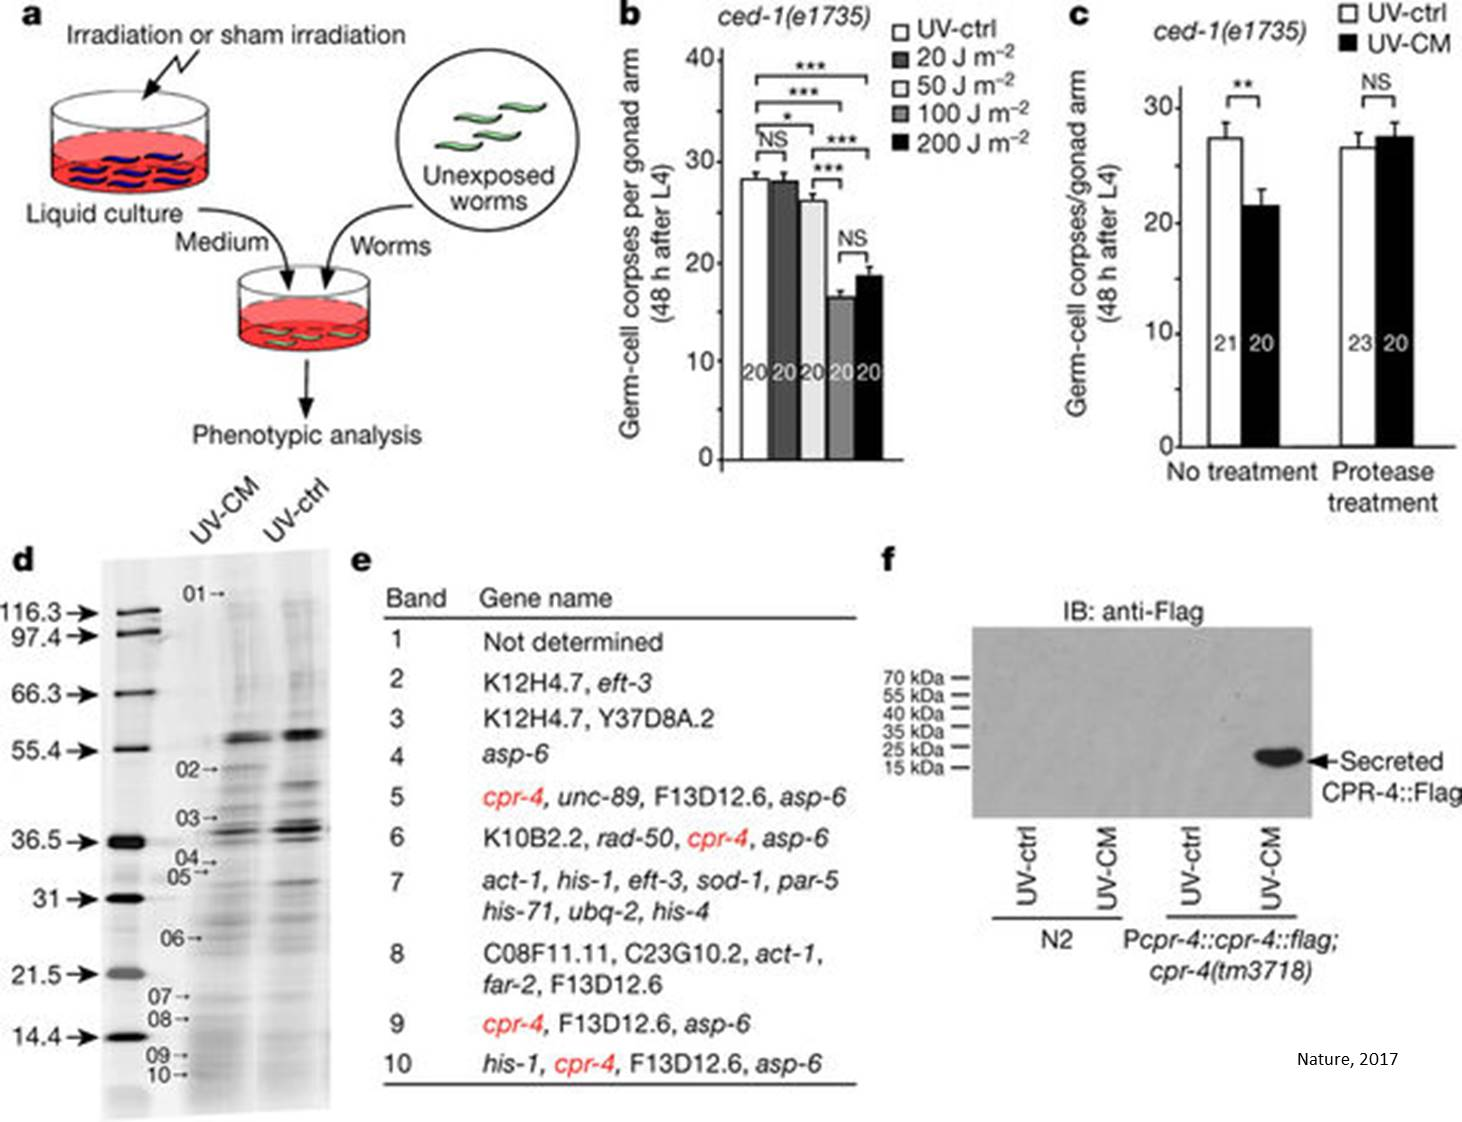 A cysteine protease mediates radiation-induced bystander effects!